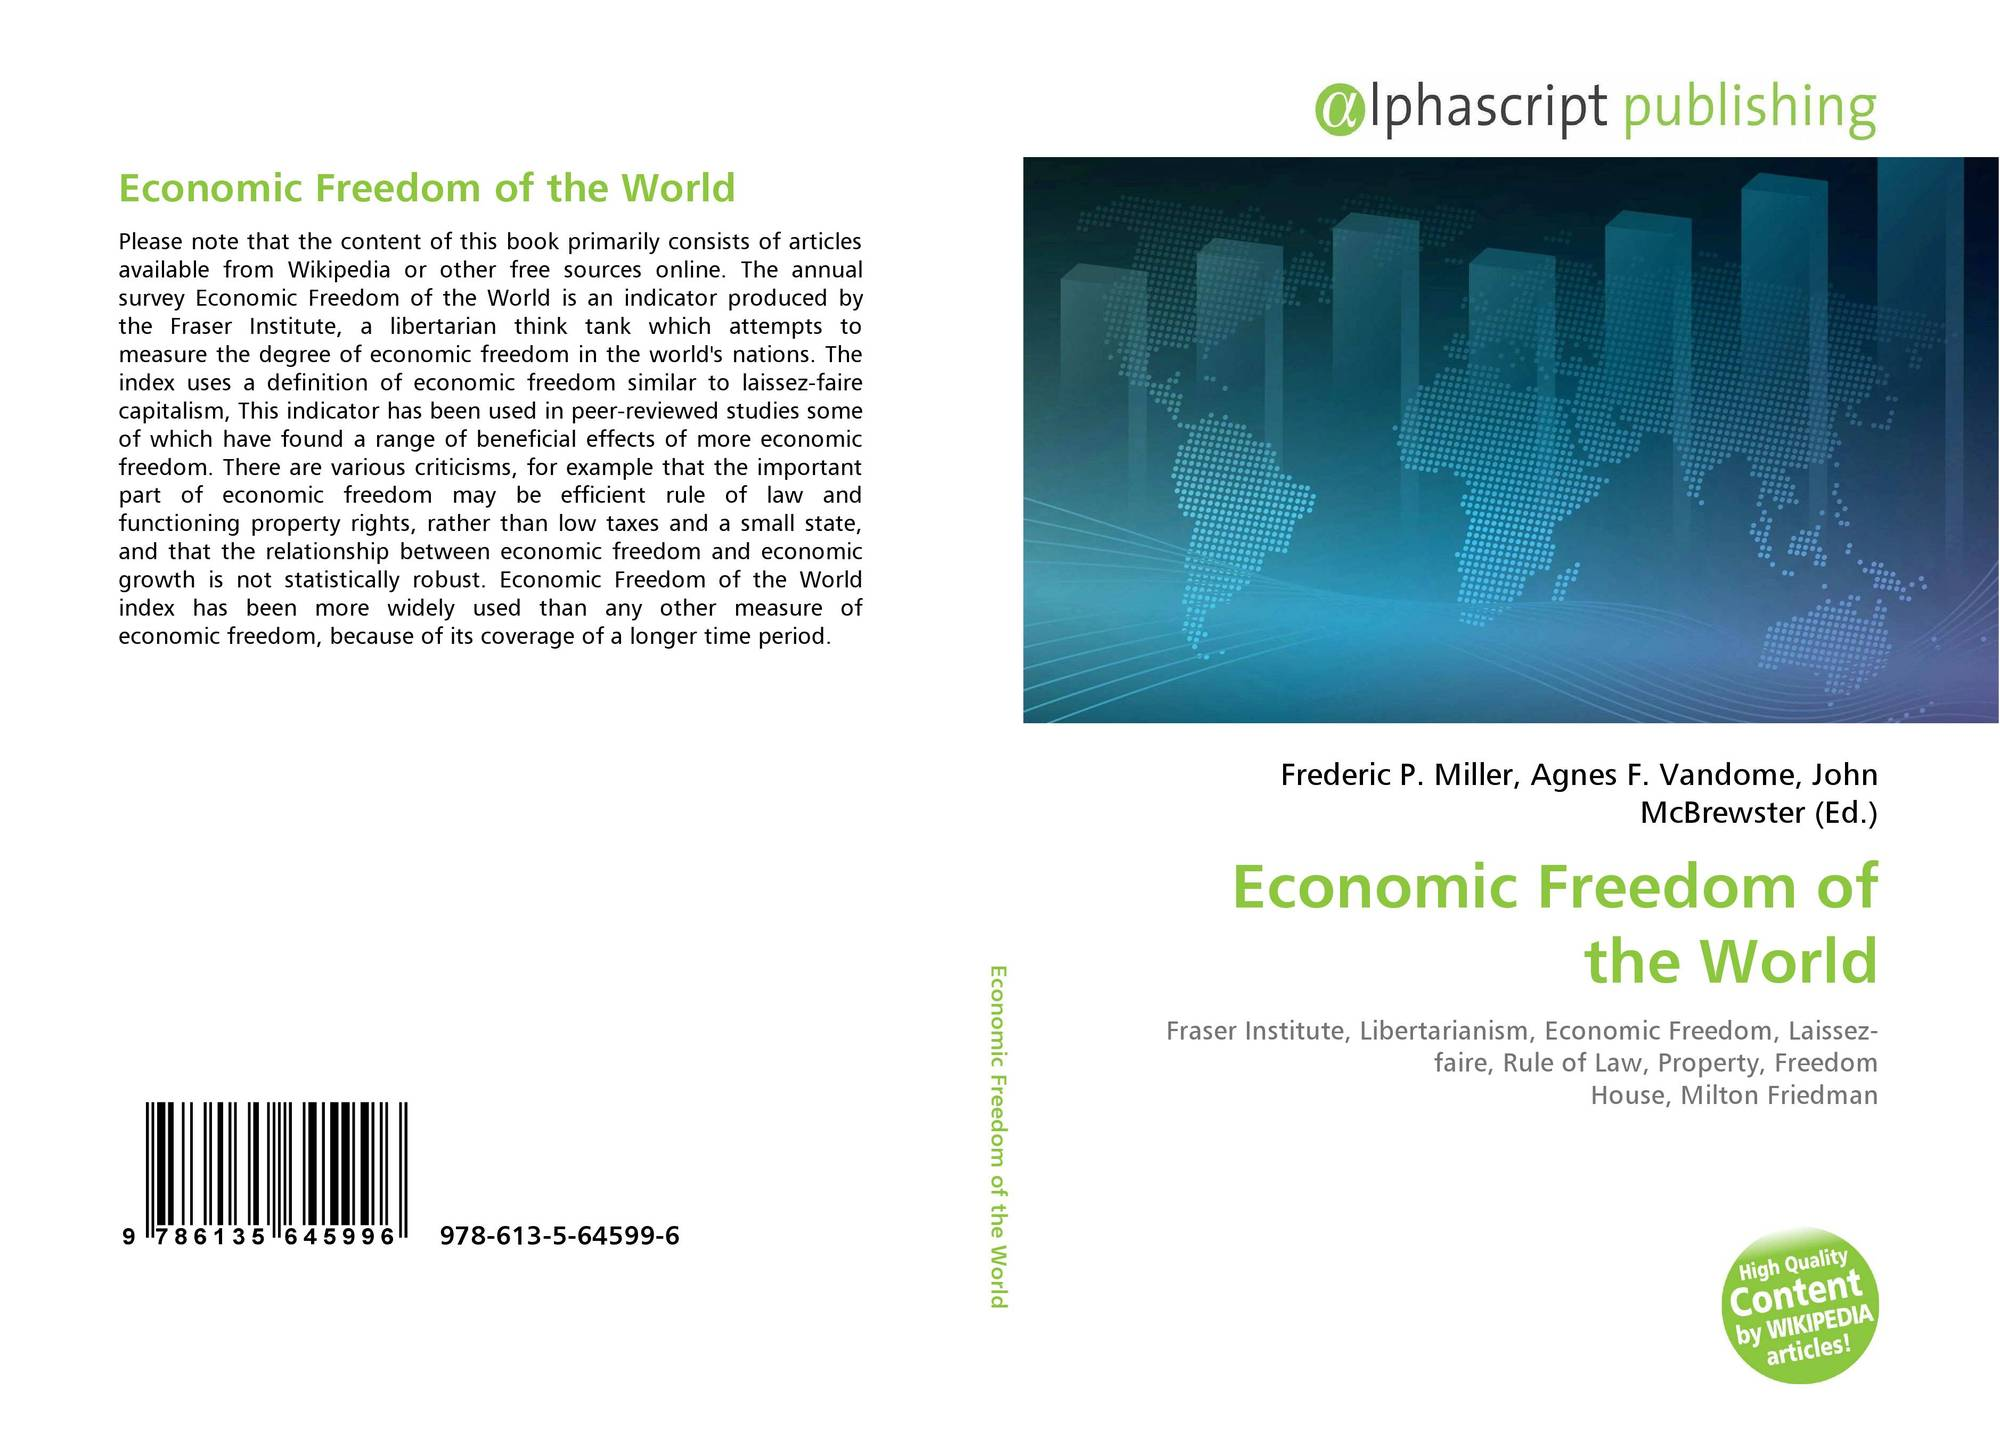 relationship between economic freedom and variations In addition, there appears to be a convex relationship between total and political globalization and overweight, a mostly linear negative relationship between economic globalization and overweight, and a mostly linear positive association between social globalization and overweight.